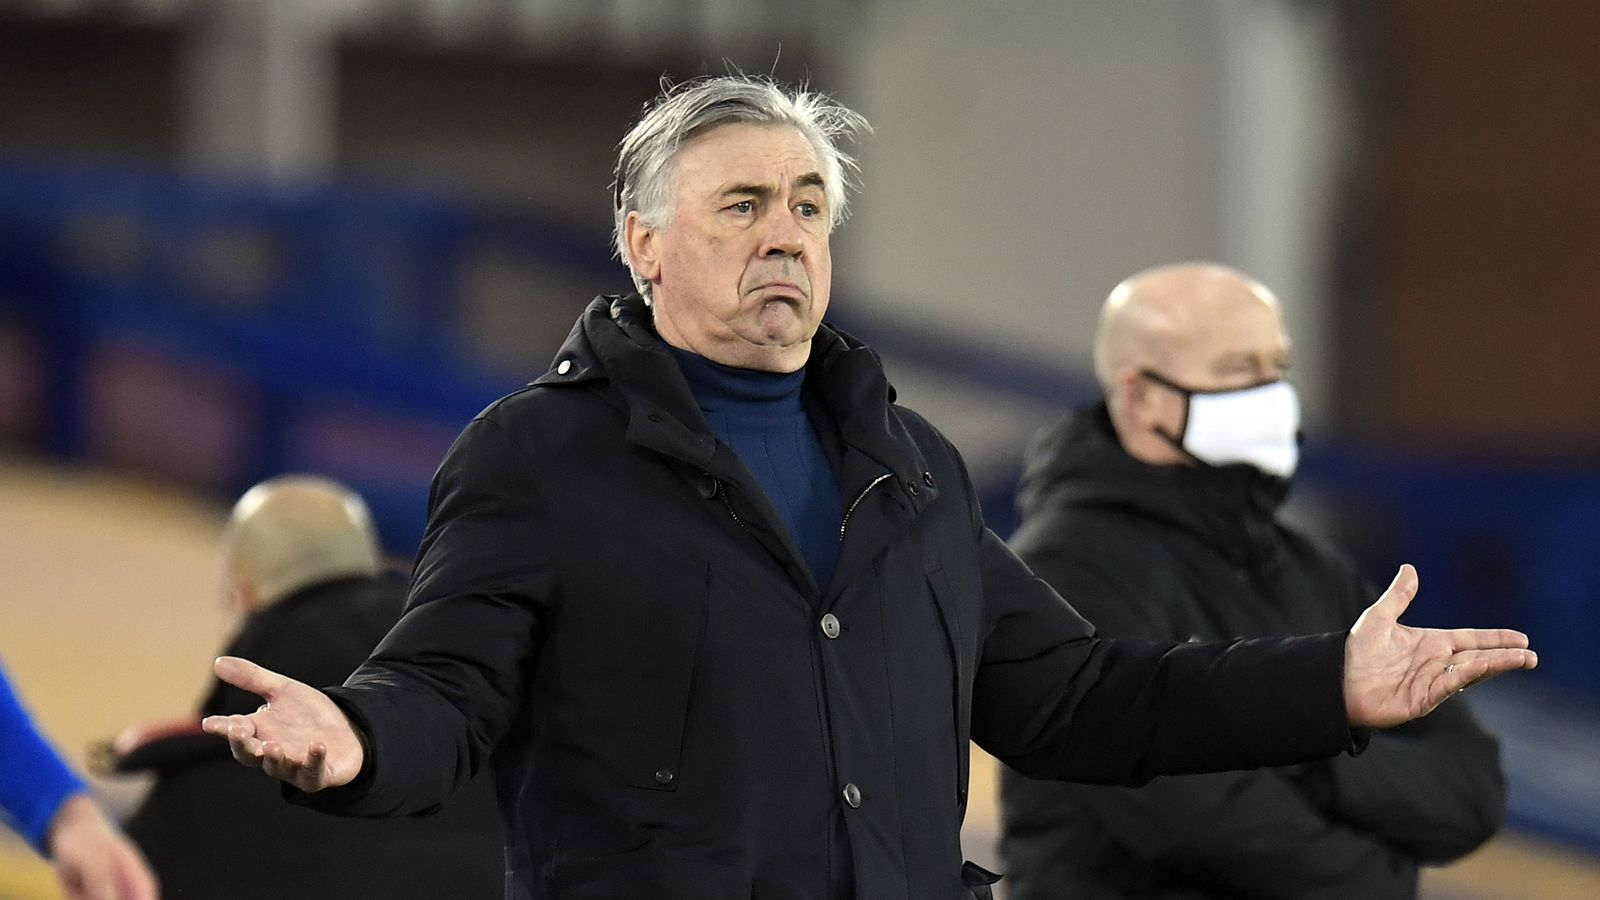 Carlo Ancelotti: Everton manager urges players to 'embrace ambition' of European football